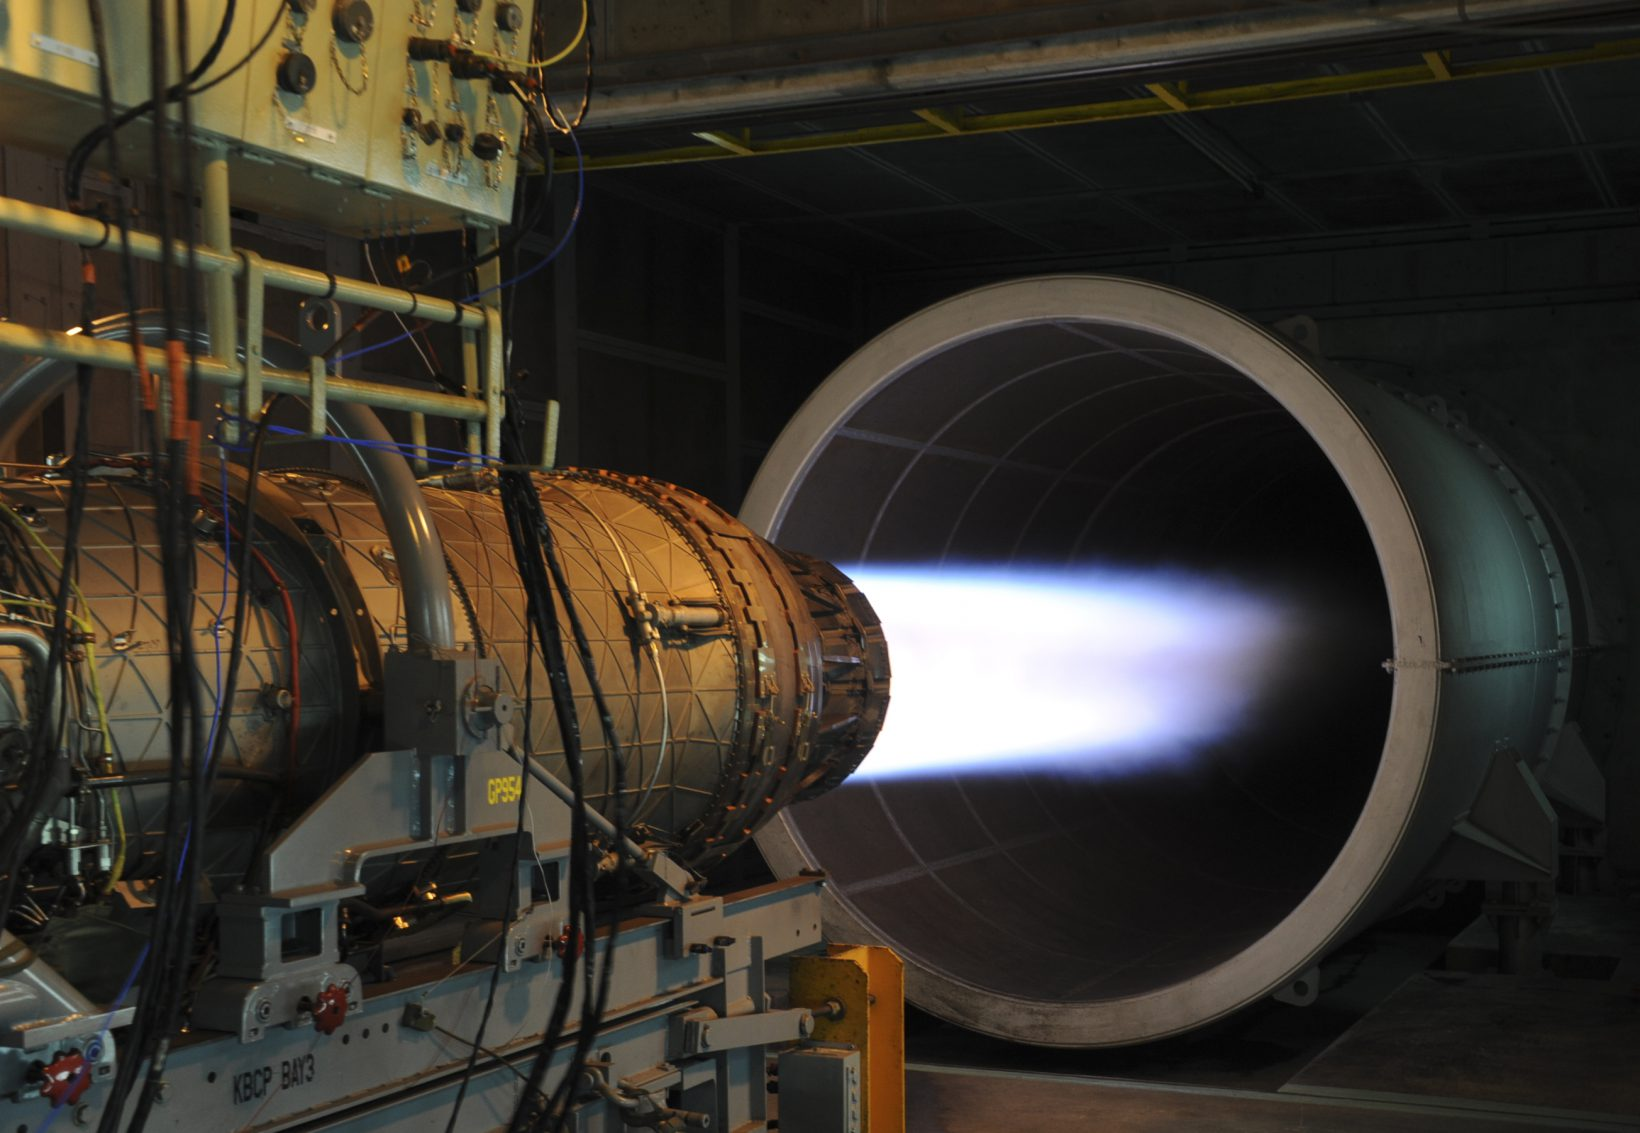 A U.S. Air Force F-15 Eagle fighter jet engine is pushed to maximum speed during a routine engine test at the 18th Component Maintenance Squadron on Kadena Air Base, Japan, June 26, 2012. 18th CMS engine test facility is primarily used for testing uninstalled engines following maintenance, and is also used as a trim pad to perform tests on highly powered aircrafts that run above 80 percent of the engines rated capacity. (U.S. Air Force photo/Airman 1st Class Justin Veazie)